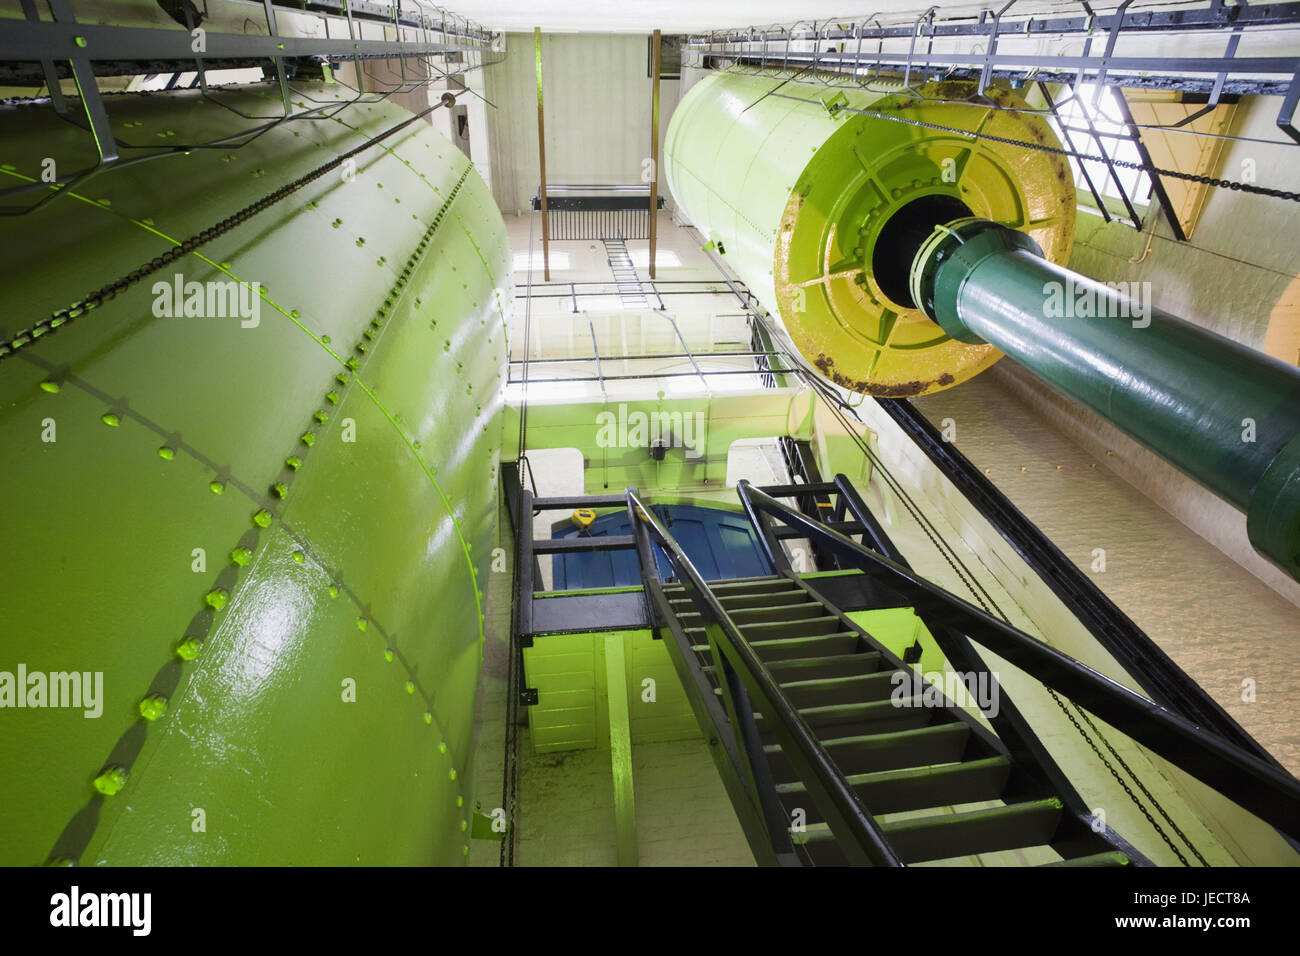 England, London, Tower Bridge, engine room, battery for storage of the hydraulic capacity, architecture, machine, - Stock Image